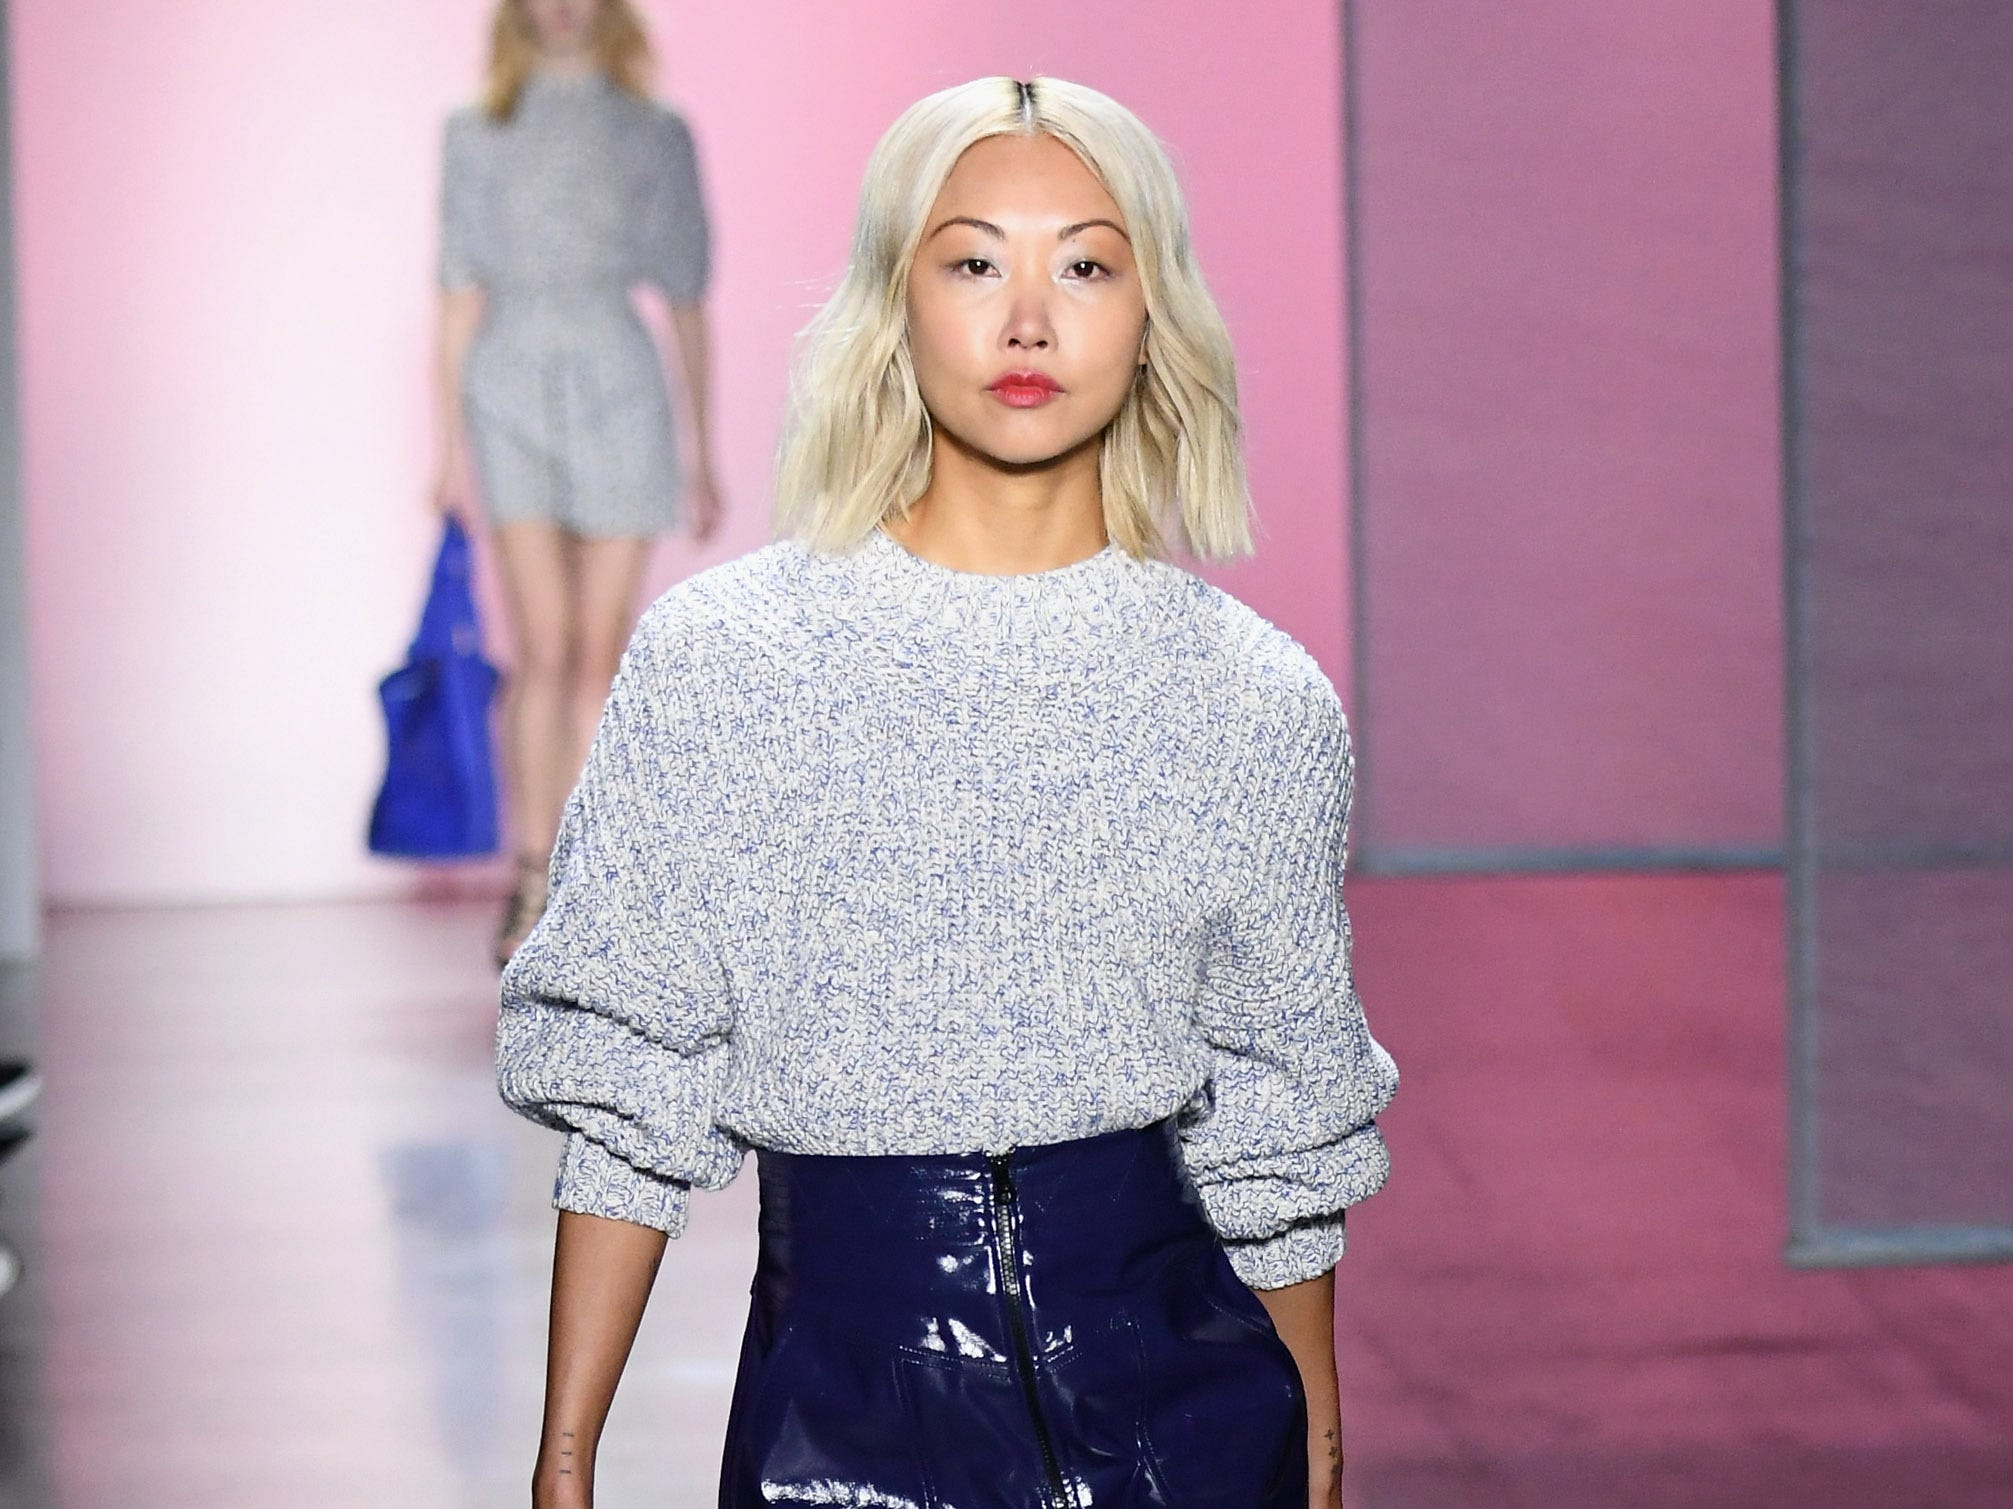 NEW YORK, NY - FEBRUARY 10:  A model walks the runway for the Rebecca Minkoff fashion show during New York Fashion Week: The Shows at Gallery I at Spring Studios on February 10, 2019 in New York City.  (Photo by Mike Coppola/Getty Images for NYFW: The Shows) ORG XMIT: 775290847 ORIG FILE ID: 1097085568